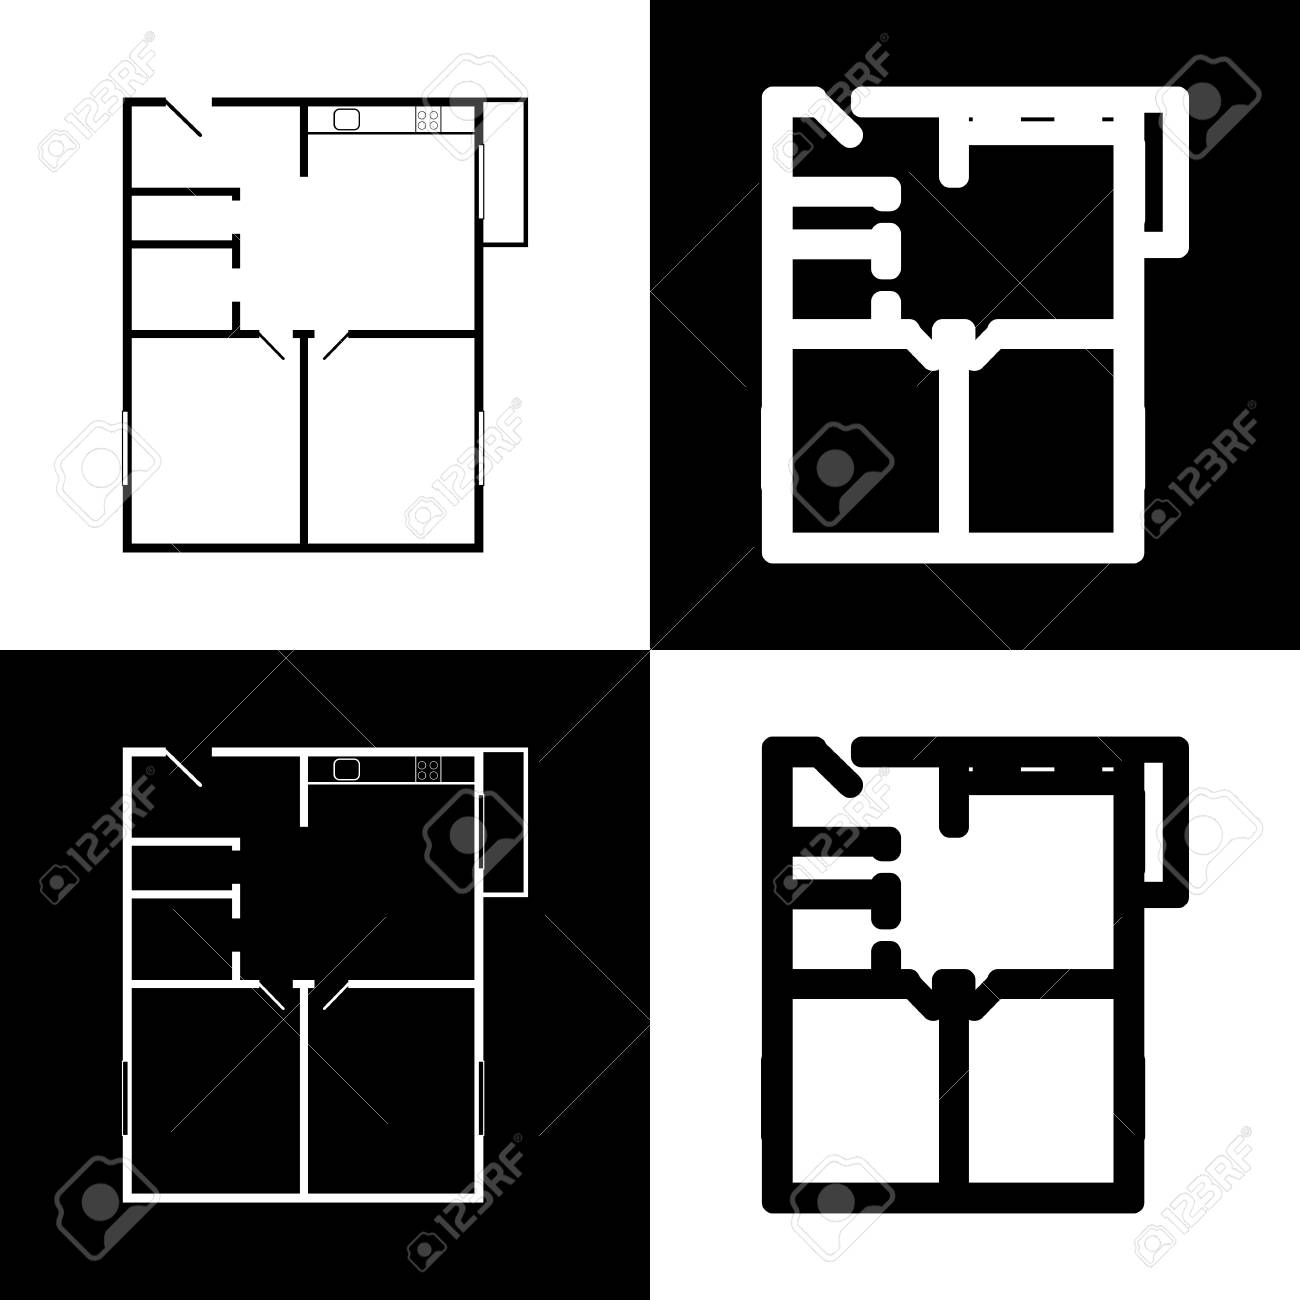 Apartment house floor plans. Vector. Black and white icons and.. on construction icons, workshop icons, drafting icons, design icons, land icons, fireplace icons, farm icons, architecture icons, drawing icons, head icons, study icons, foundation icons, room icons, builder icons, remodeling icons, human icons, london icons, housing icons, household icons, architectural icons,